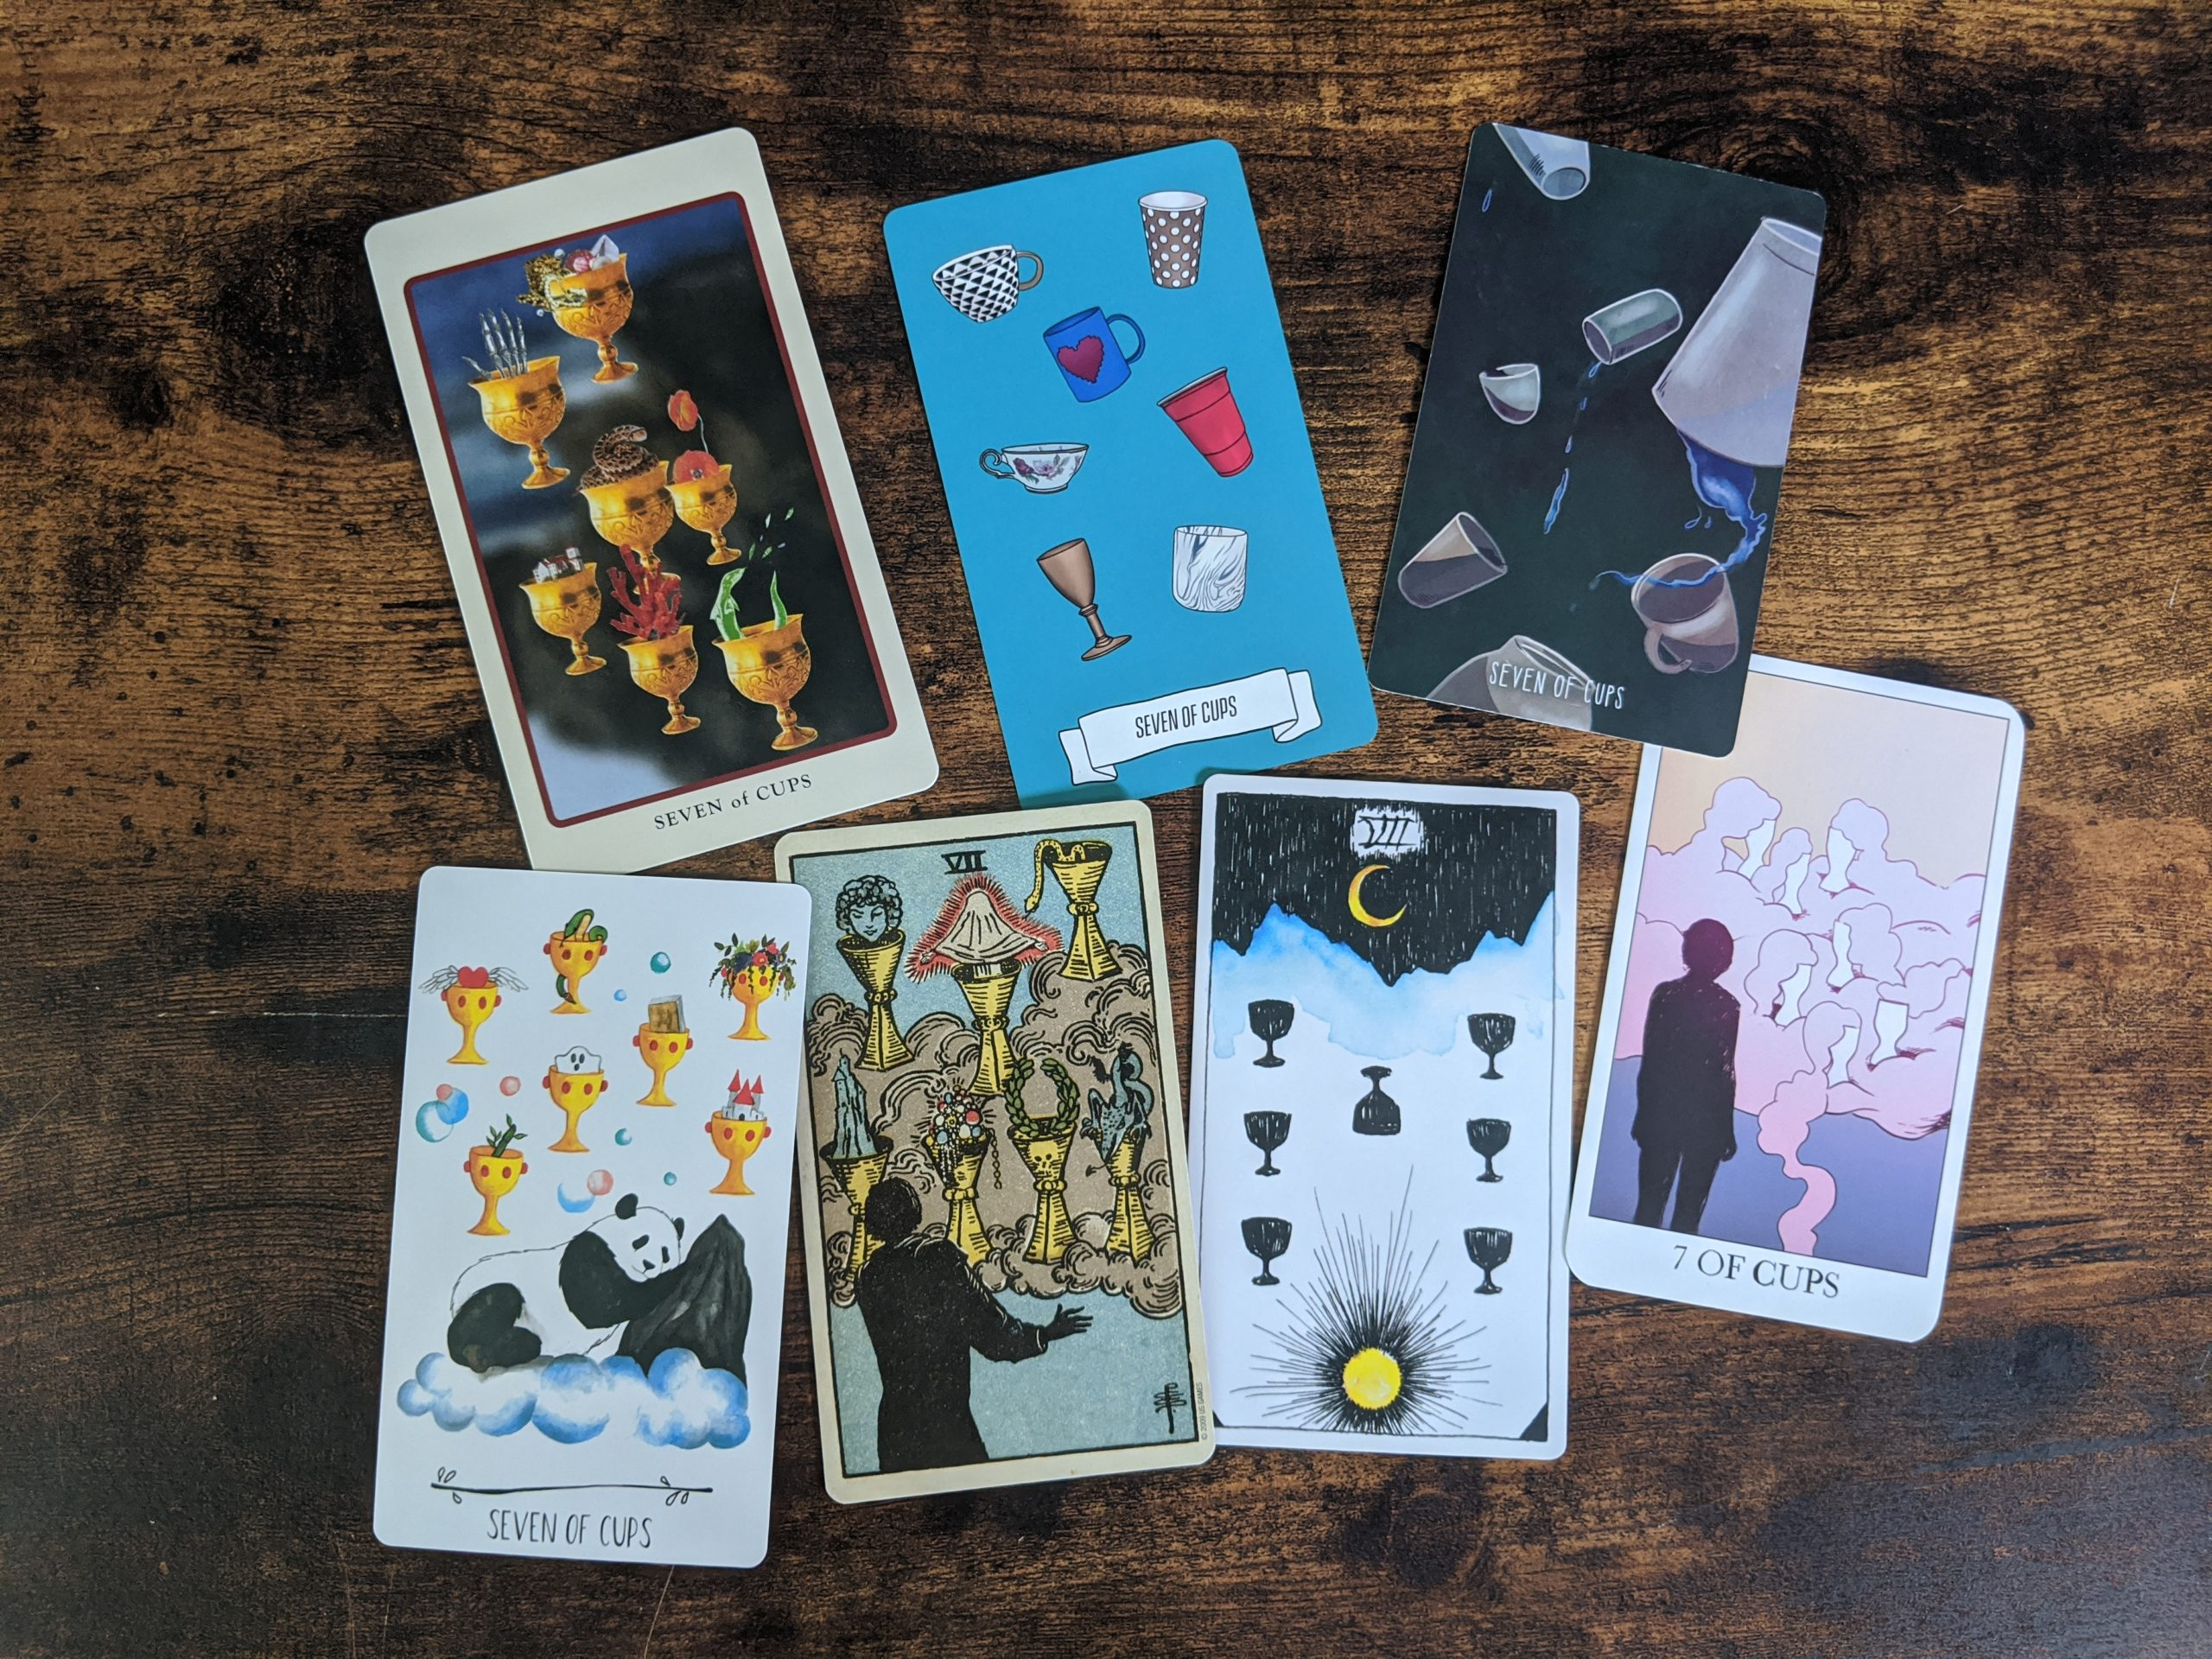 7 thoughts on the Seven of Cups